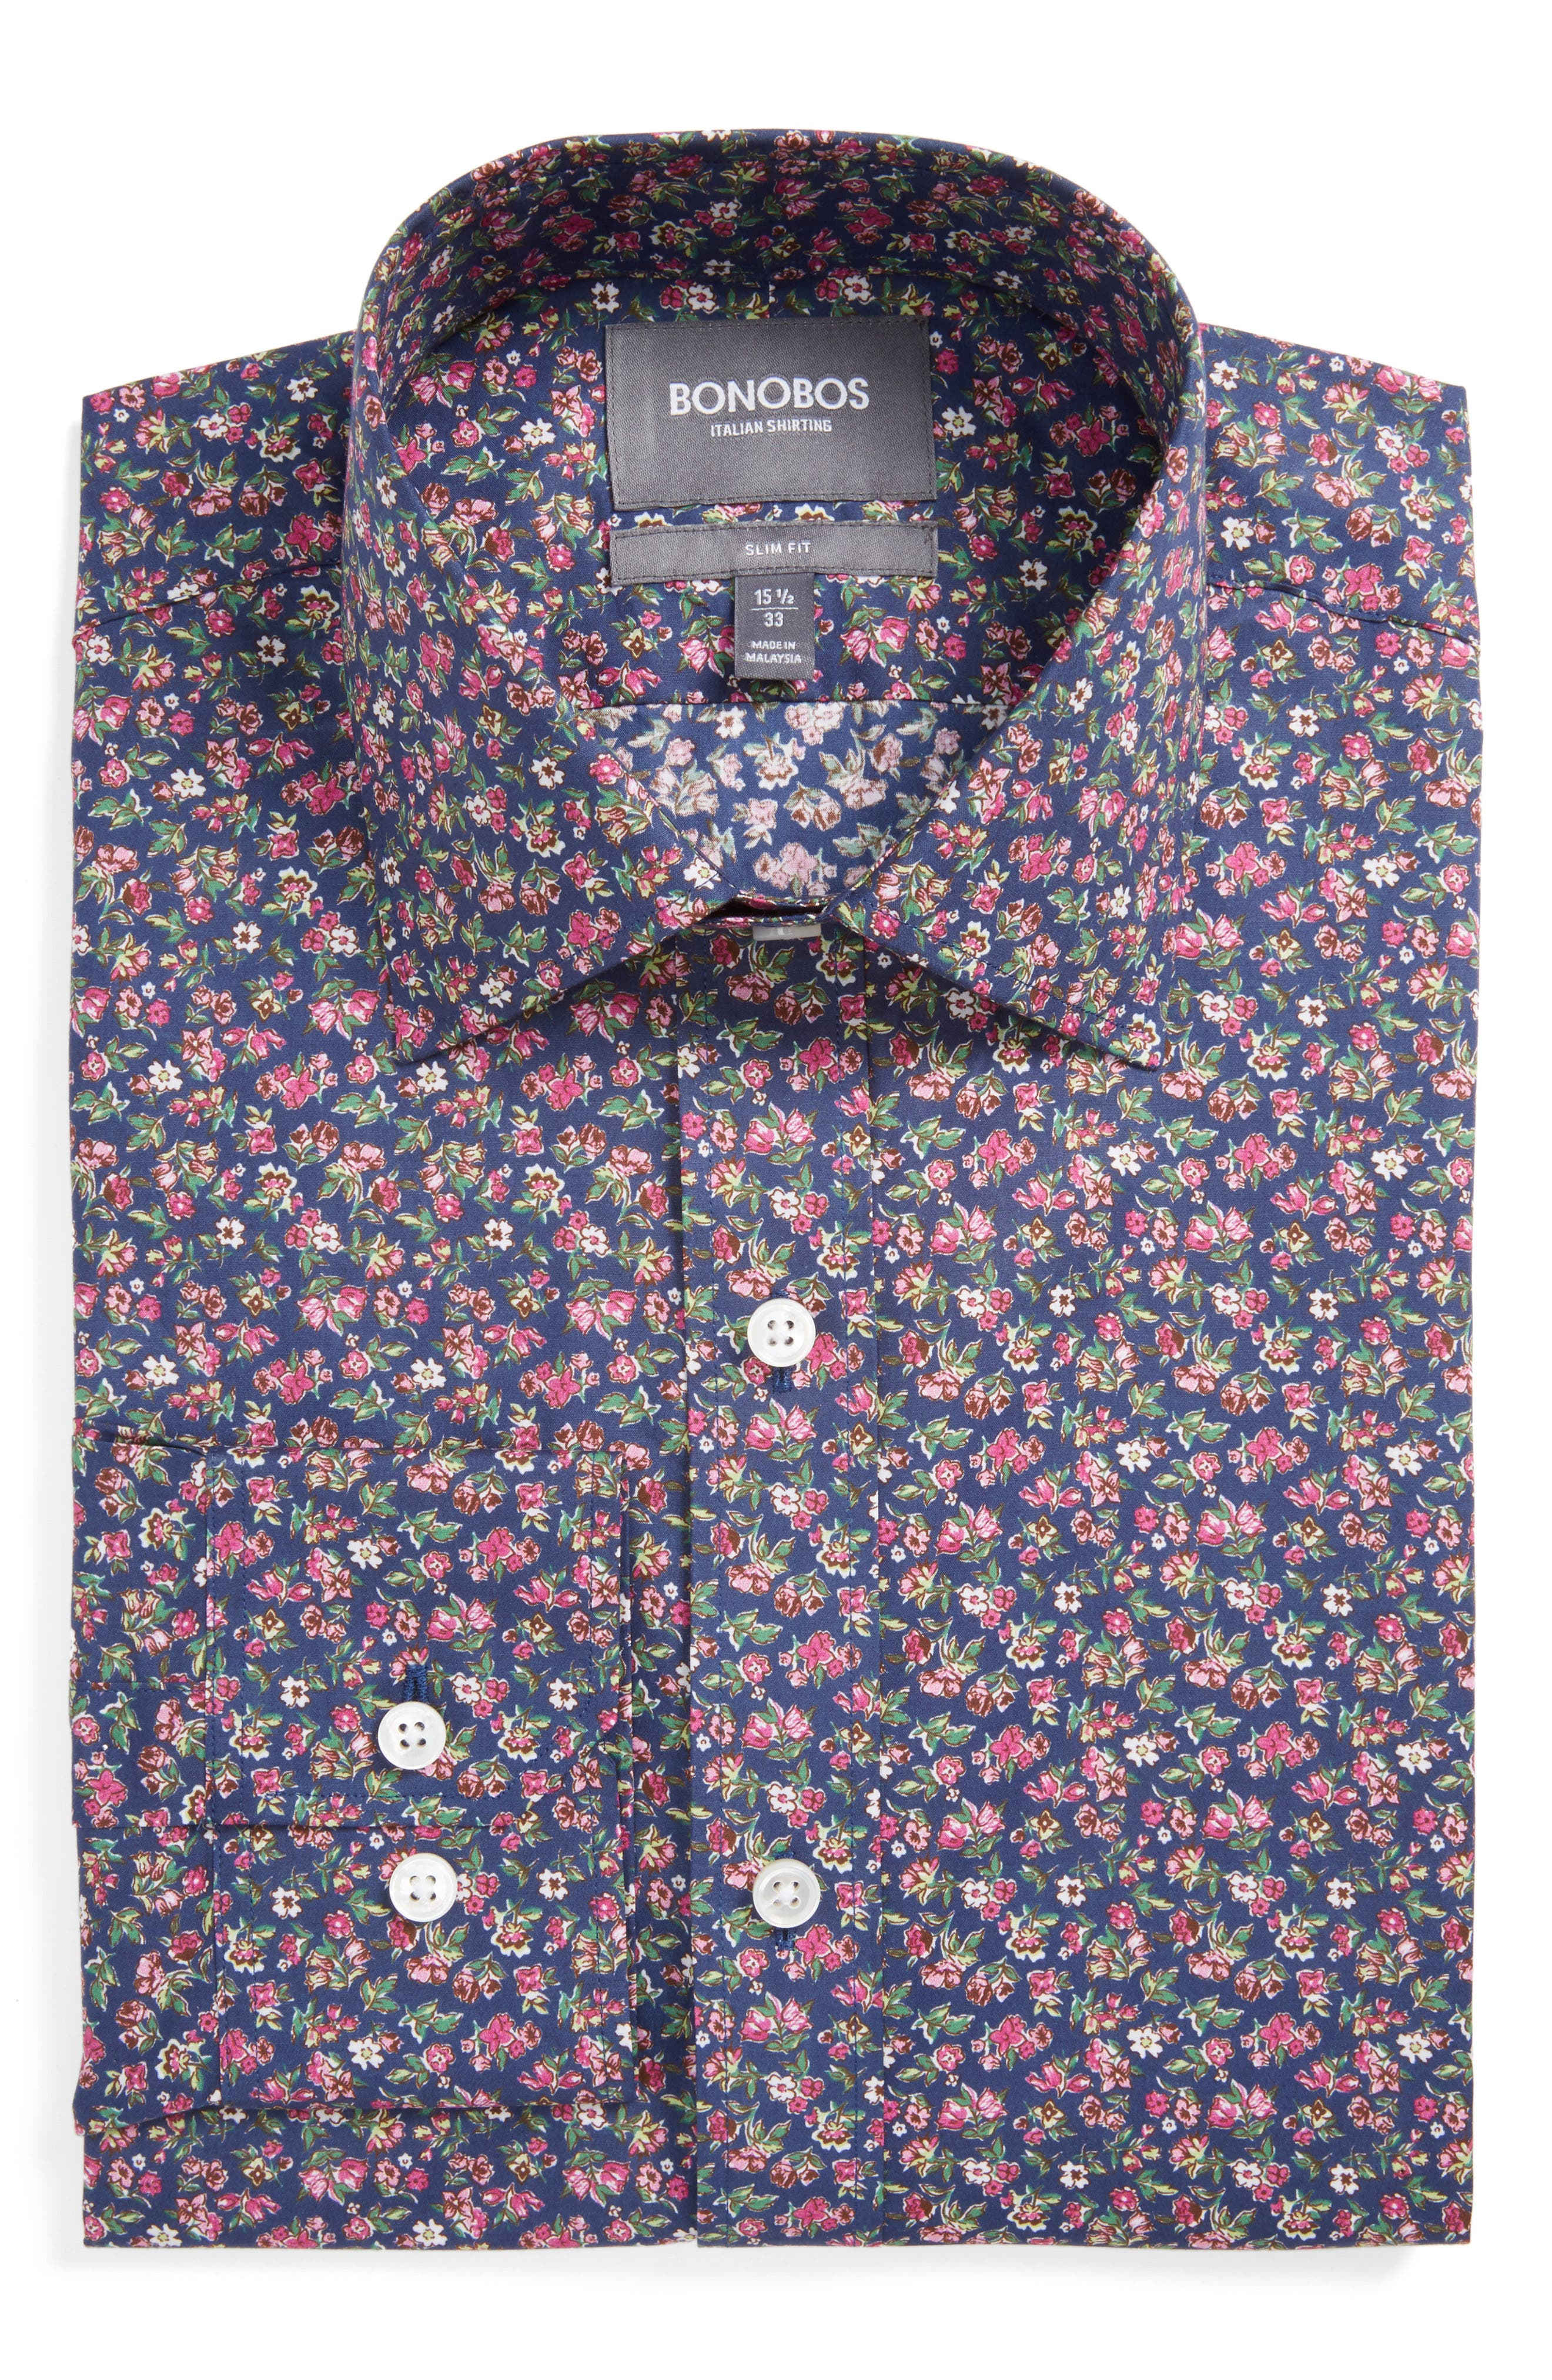 Americano Slim Fit Floral Dress Shirt,                         Main,                         color, Pink Kistler Floral